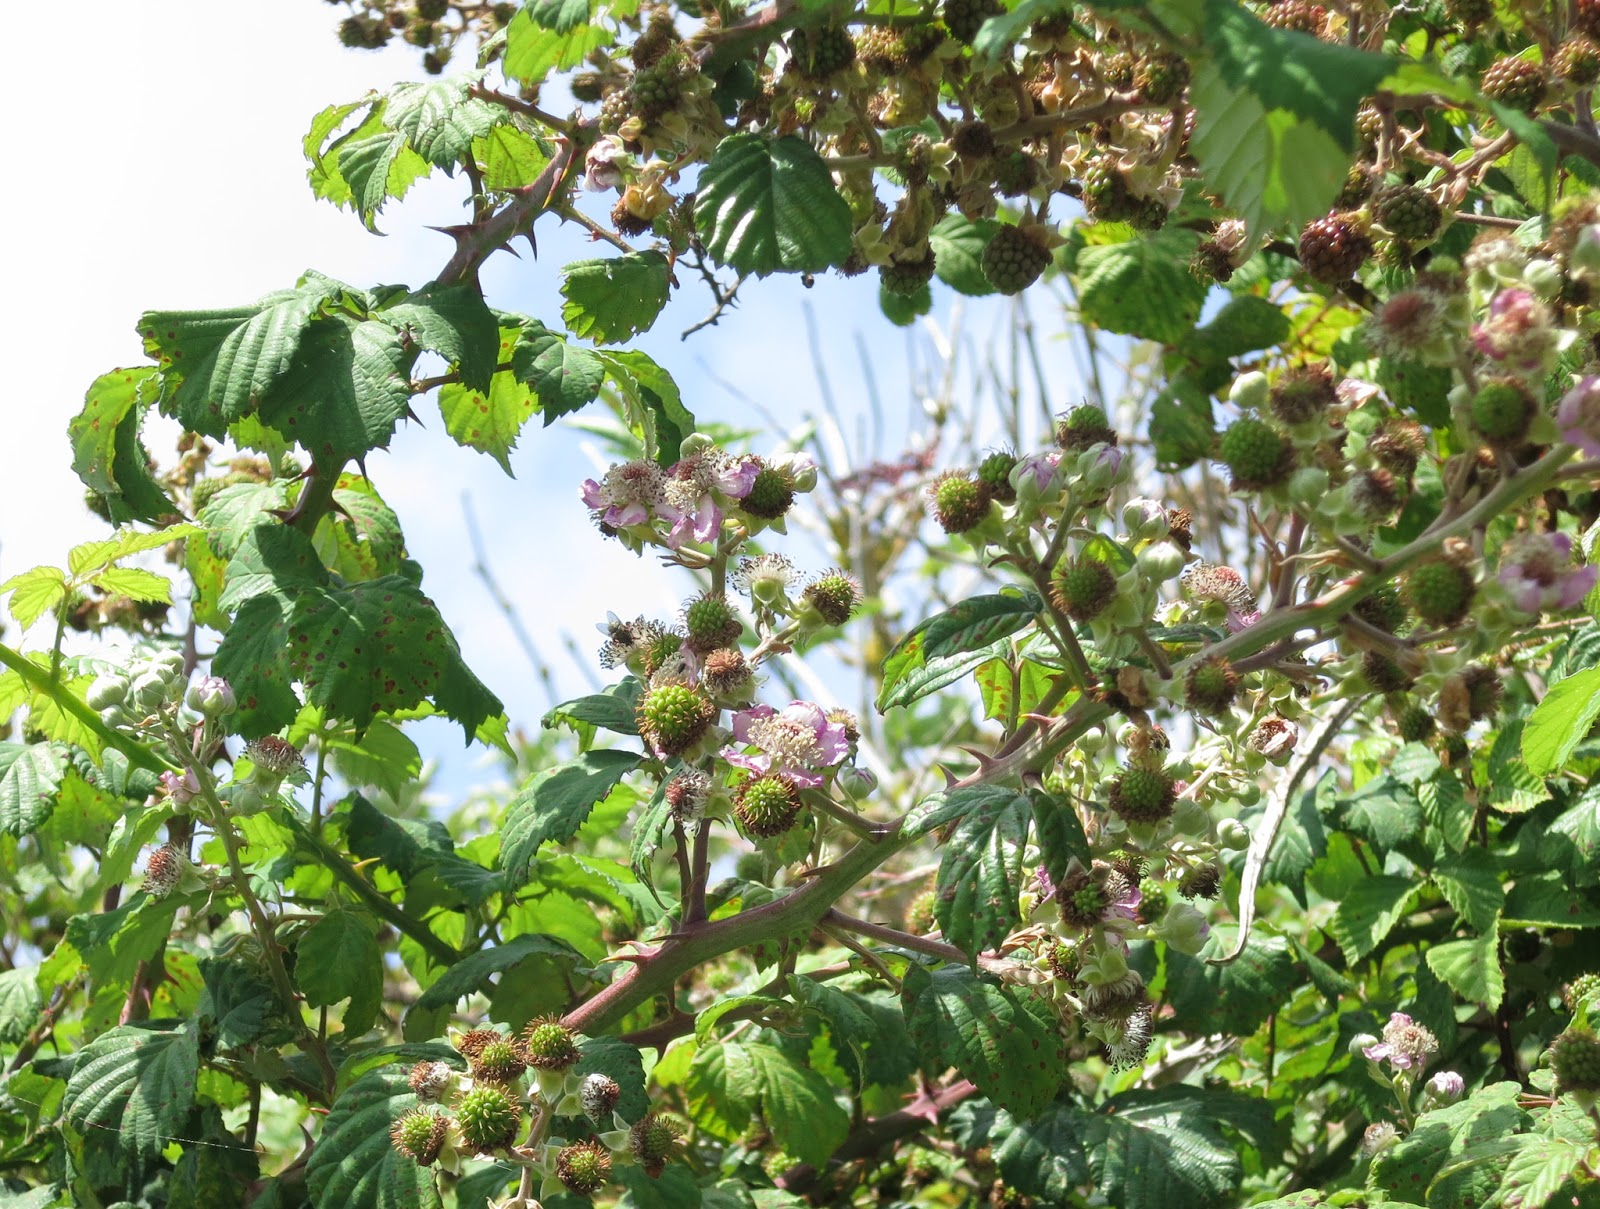 Blackberries (leaves and flowers and unripe fruit) circling blue sky